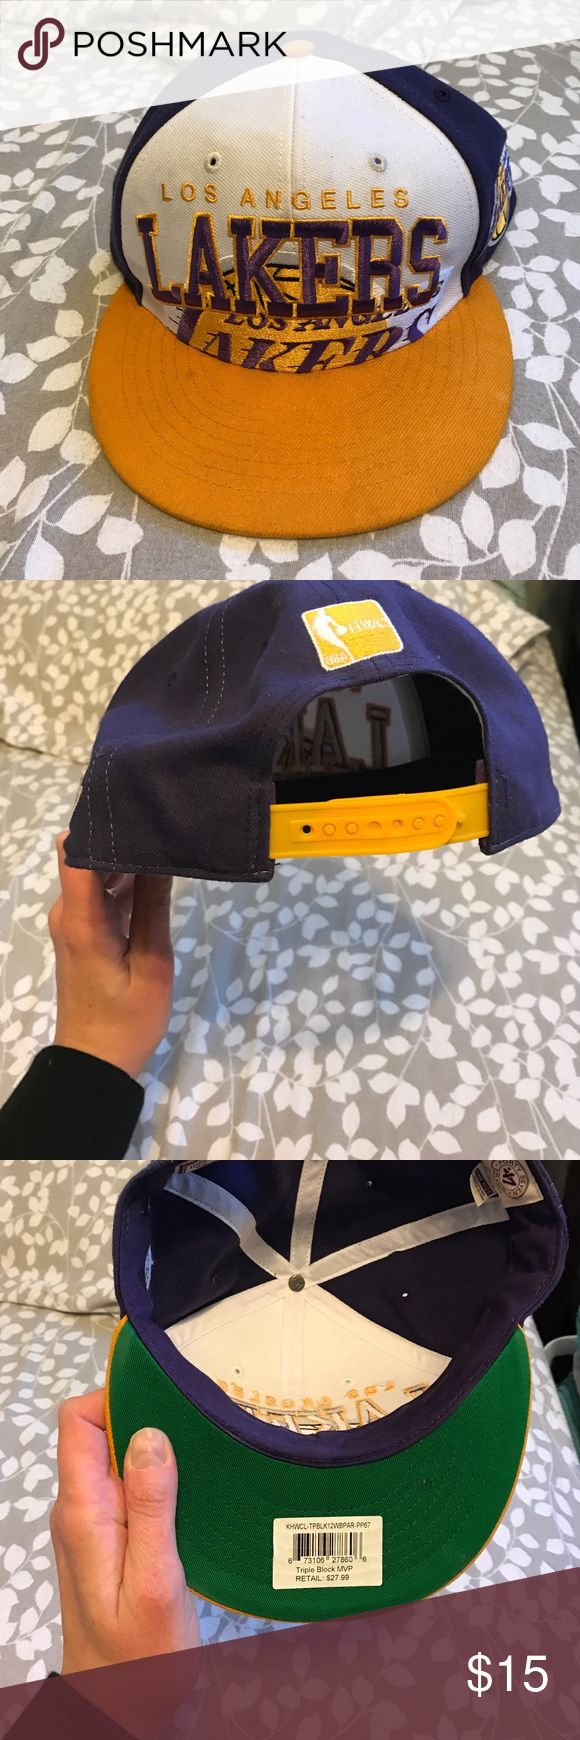 Lakers hat Good condition, hardwood classics Accessories Hats